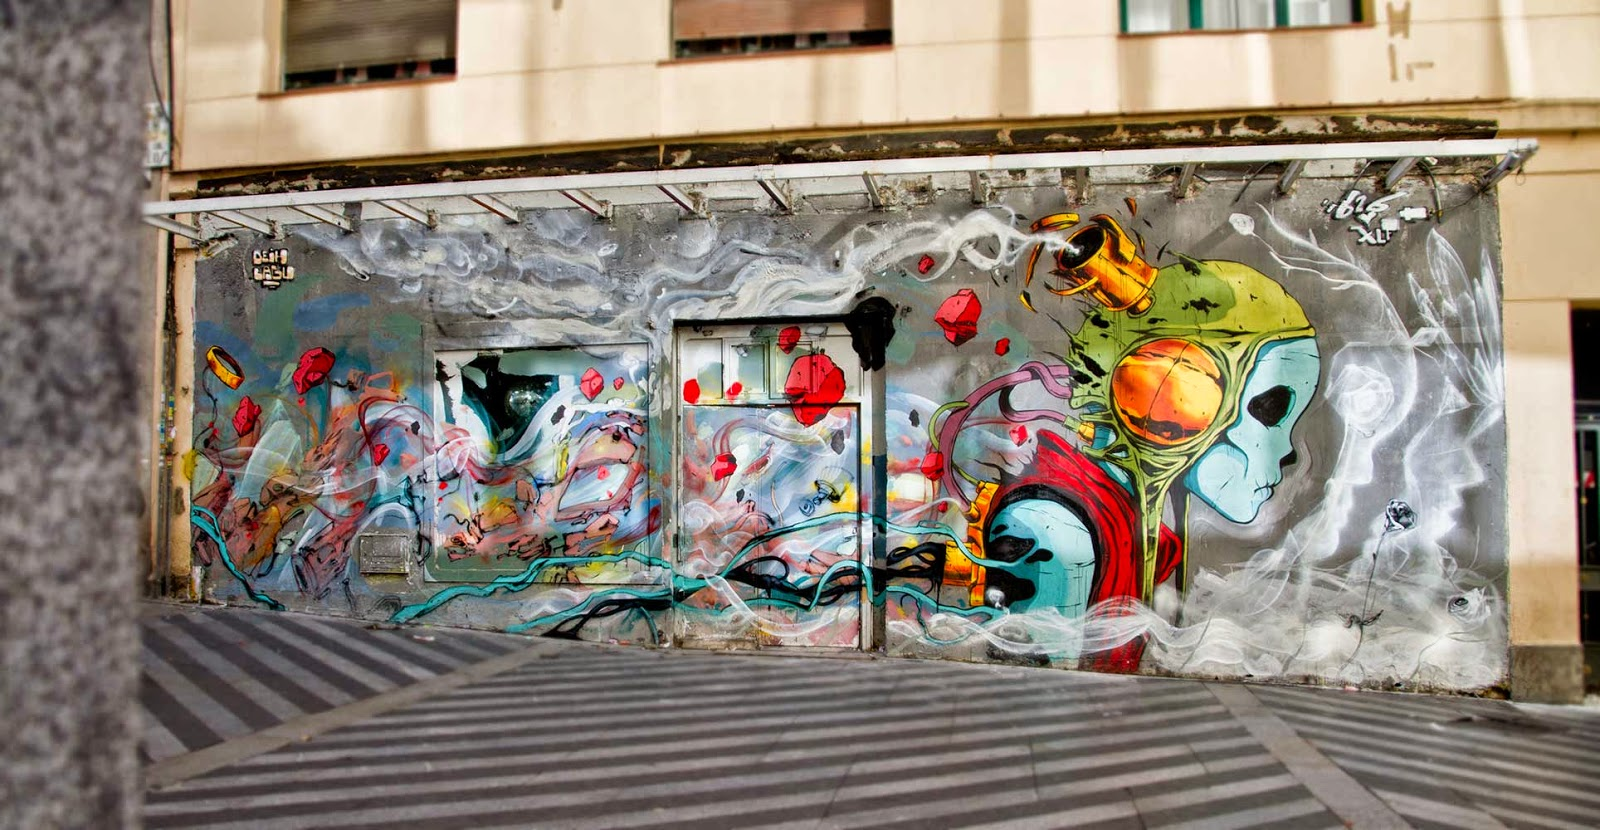 """Deih and Laguna recently stopped by Madrid in Spain where they were invited to paint for the """"Mind The Wall"""" Street Art Project organized by Swinton and Grant Gallery."""